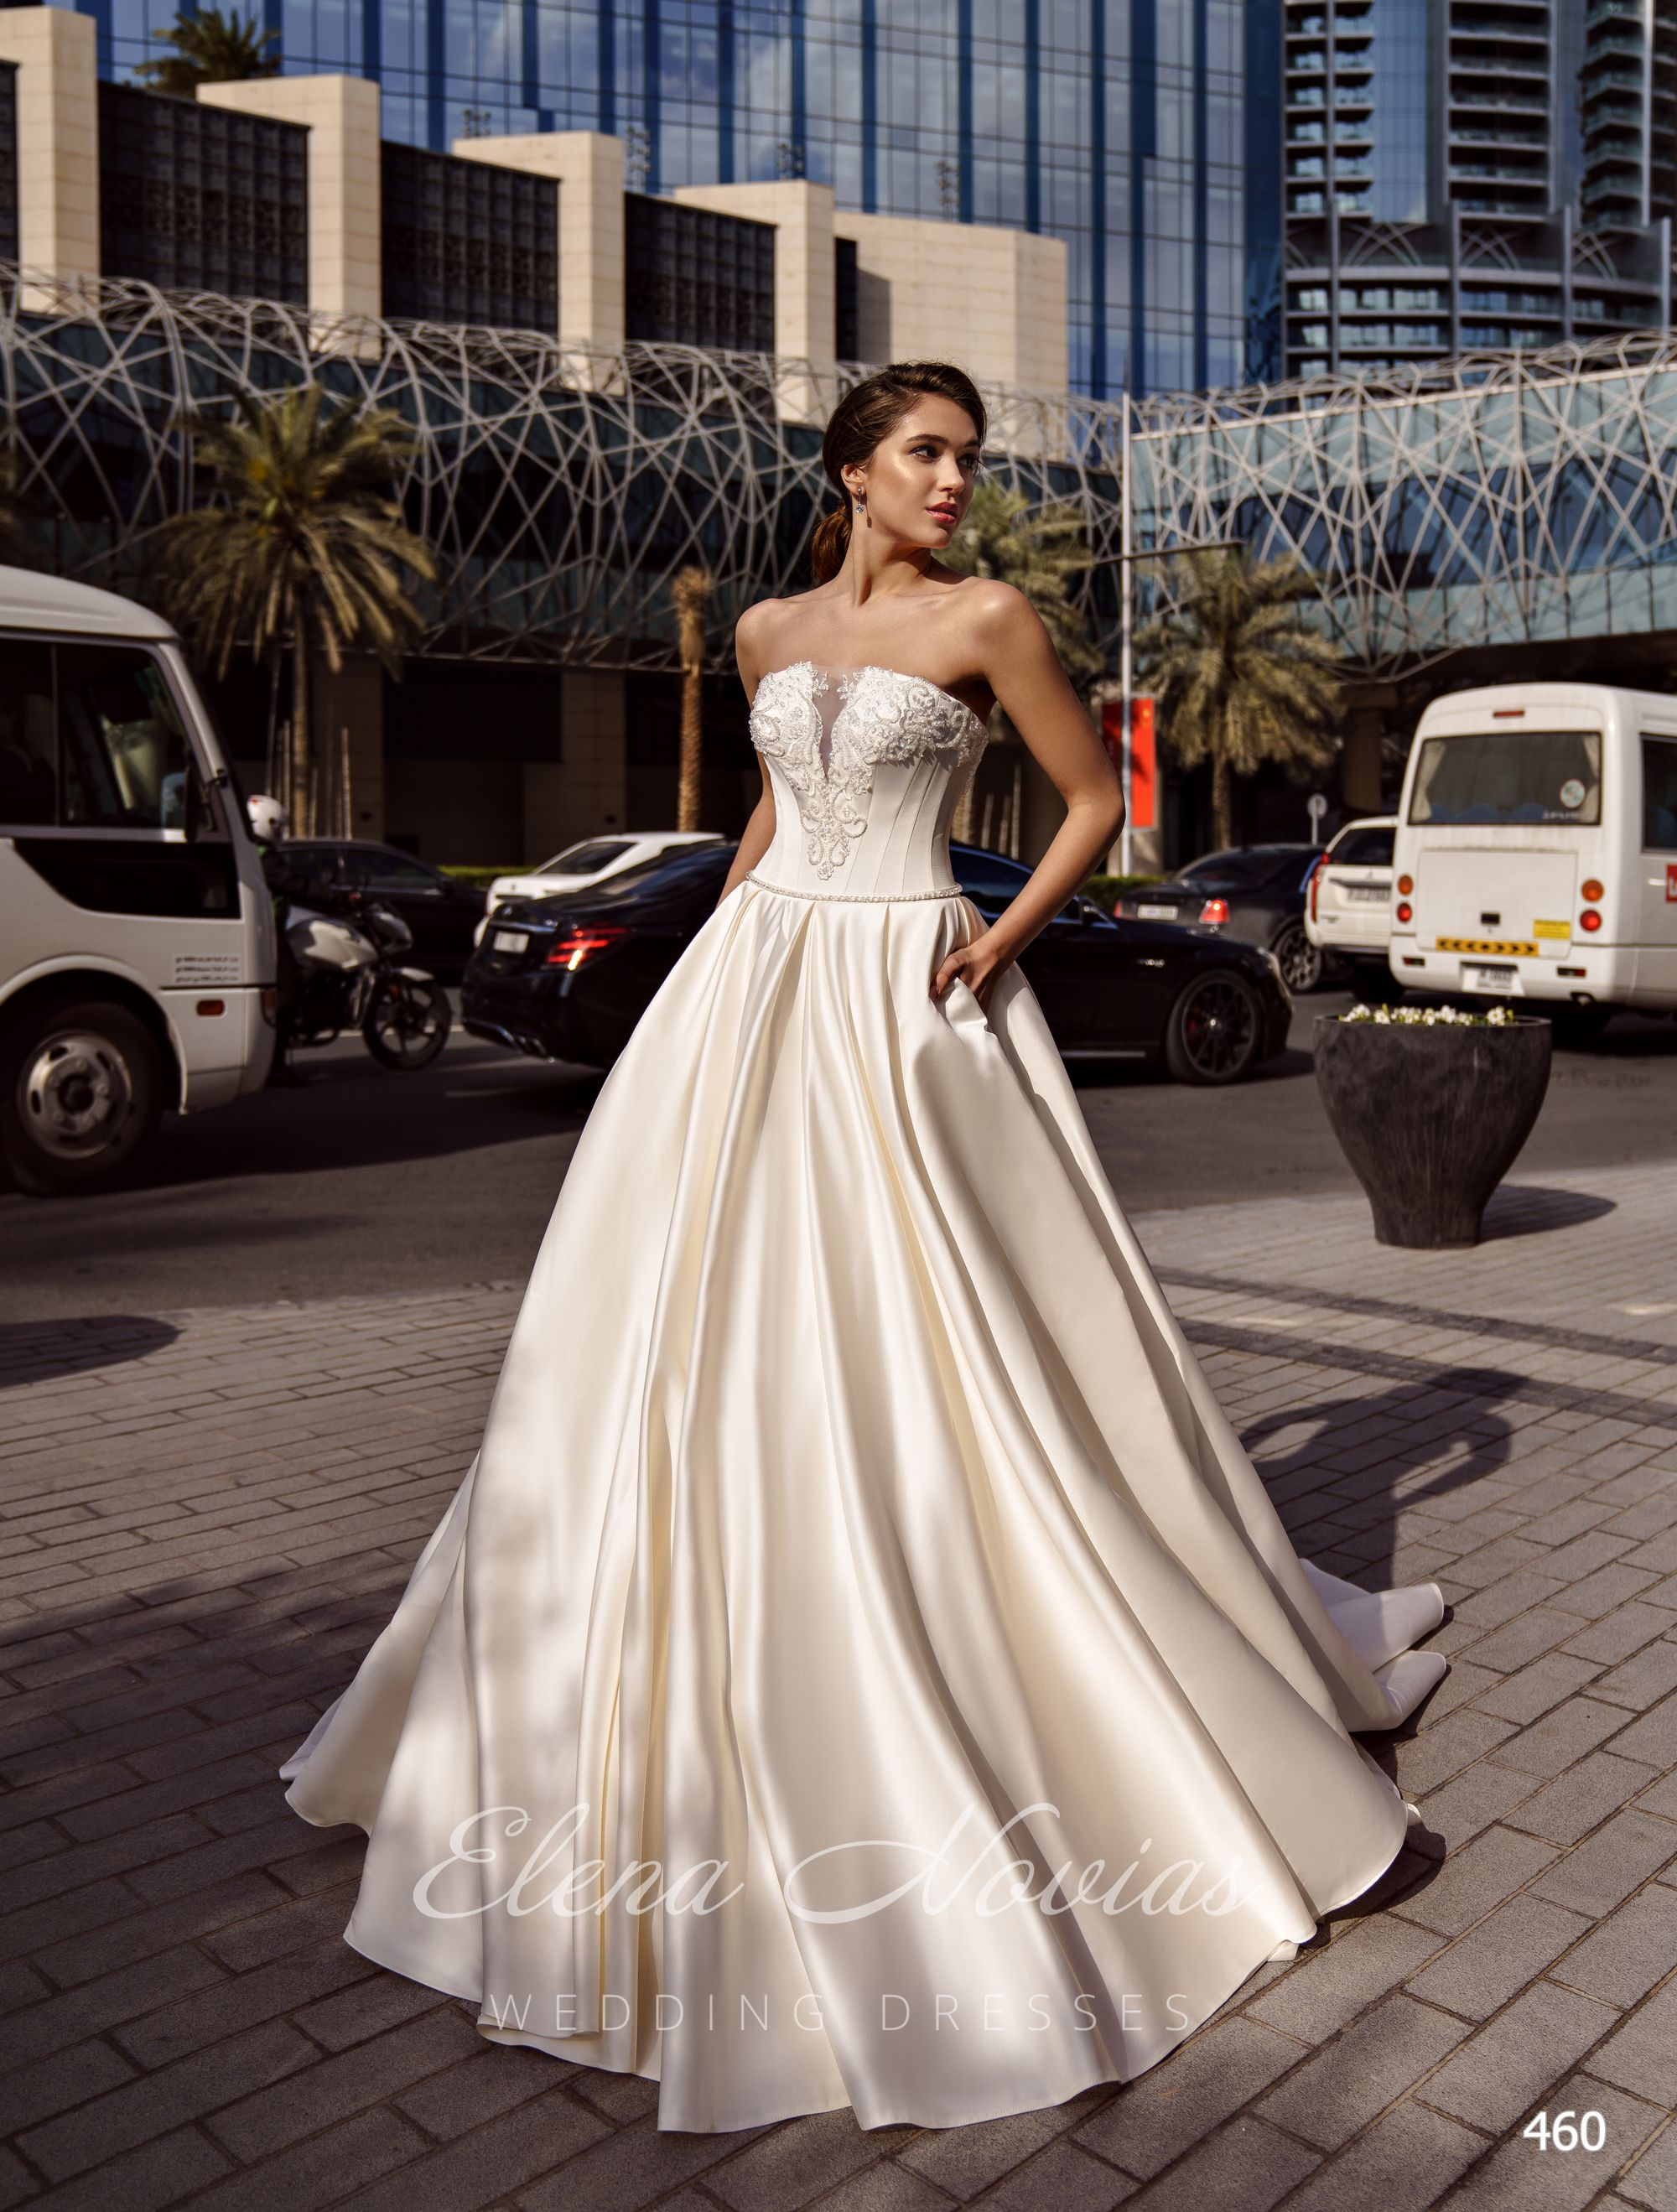 Wedding dresses 460